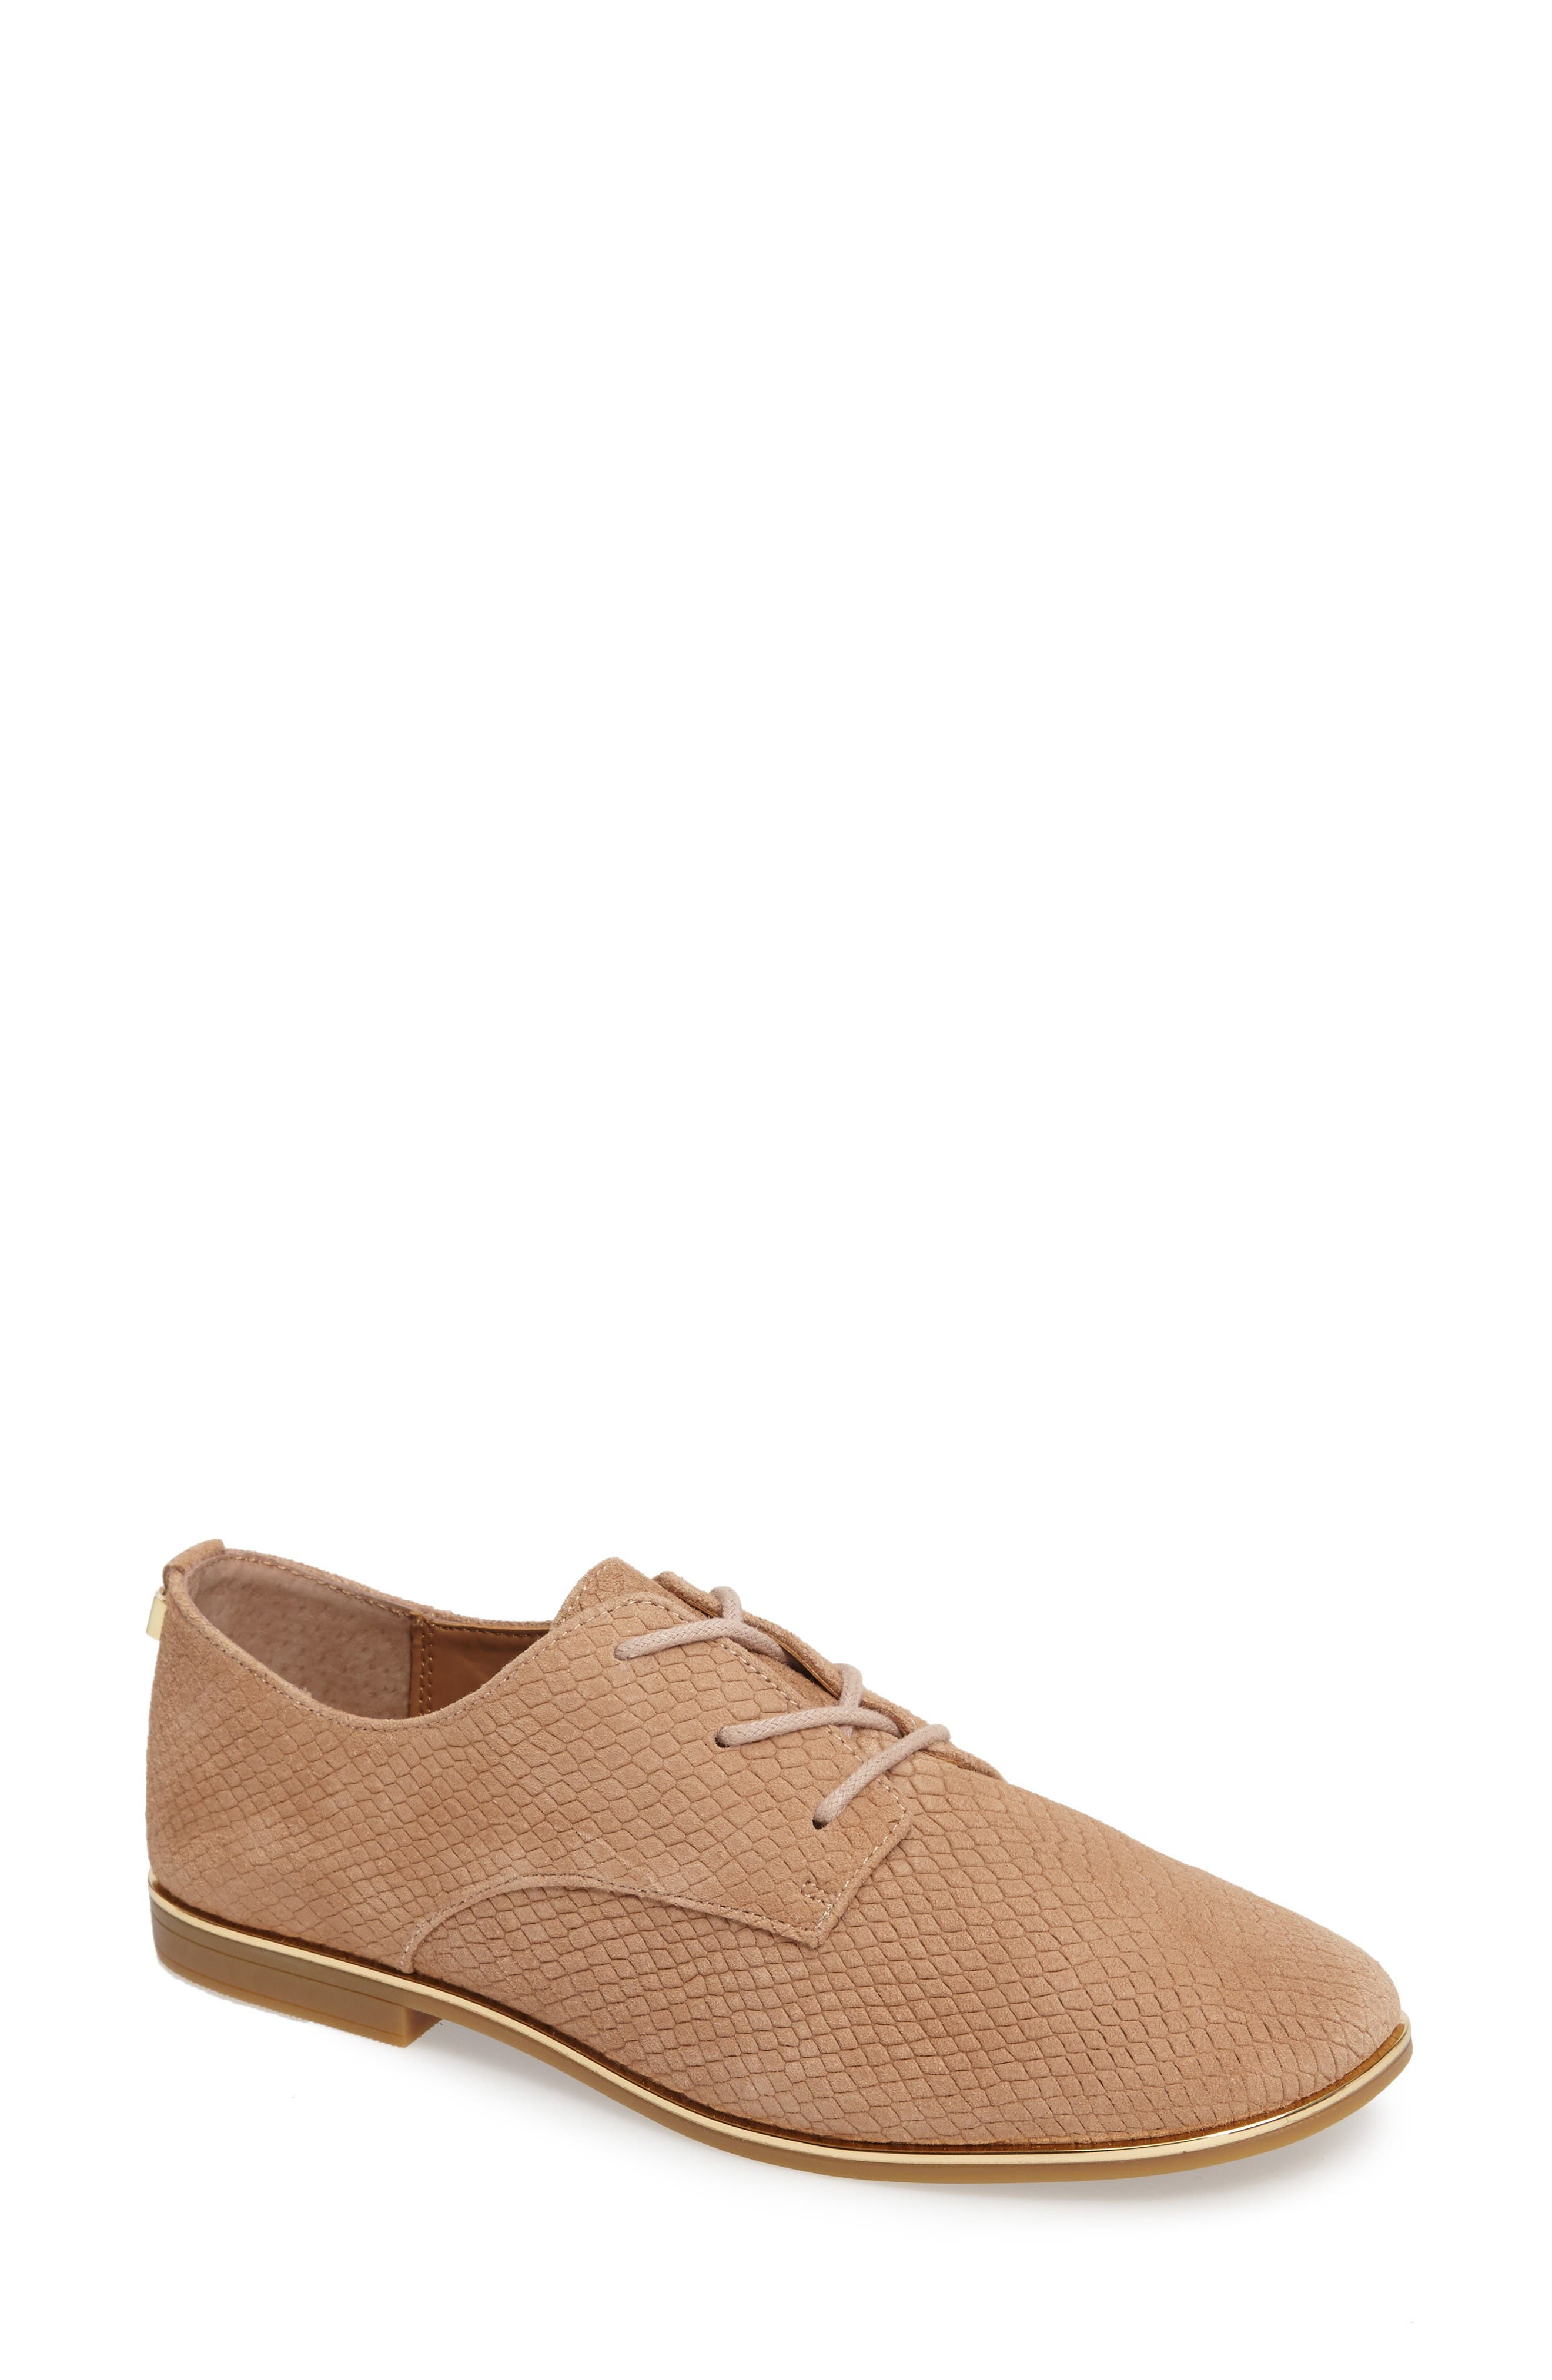 Cory Textured Oxford,                             Main thumbnail 1, color,                             Cocoon/ Warm Gold Nubuck